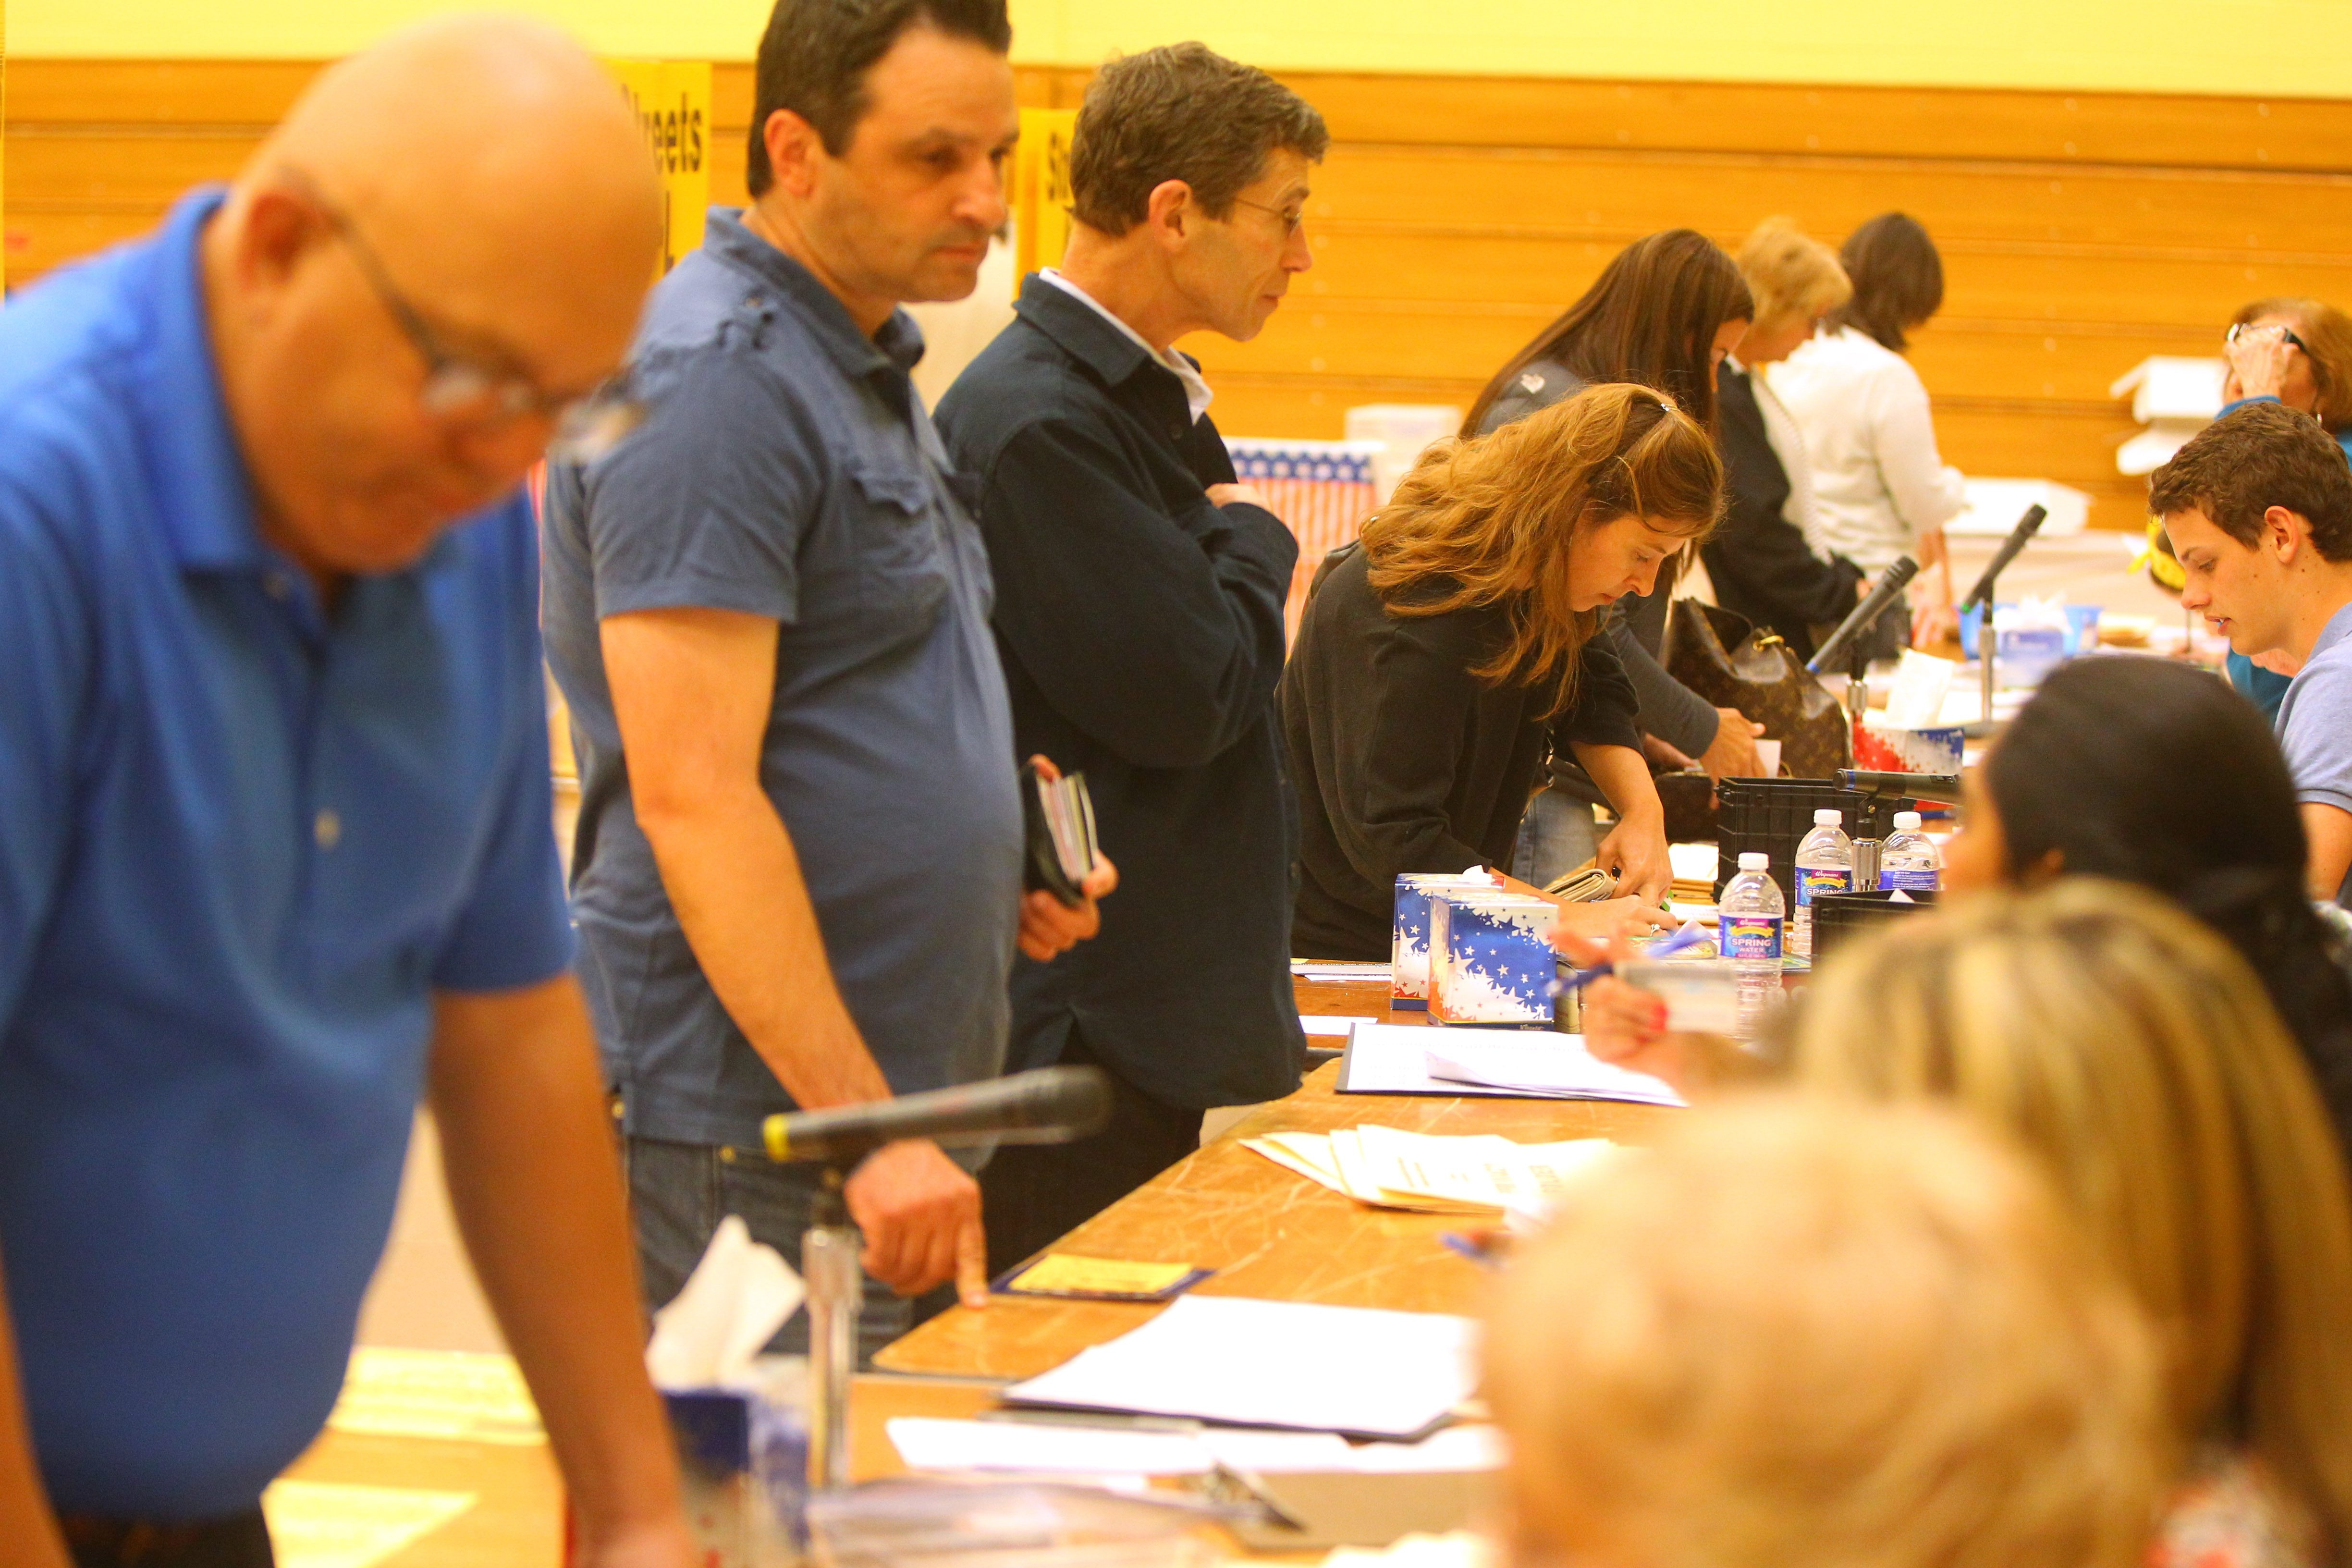 Voters in the Williamsville School District passed the budget and spending propositions handily, while ousting two board members. Here, residents sign in to vote in the gym at Williamsville North High School. (Mark Mulville/Buffalo News)